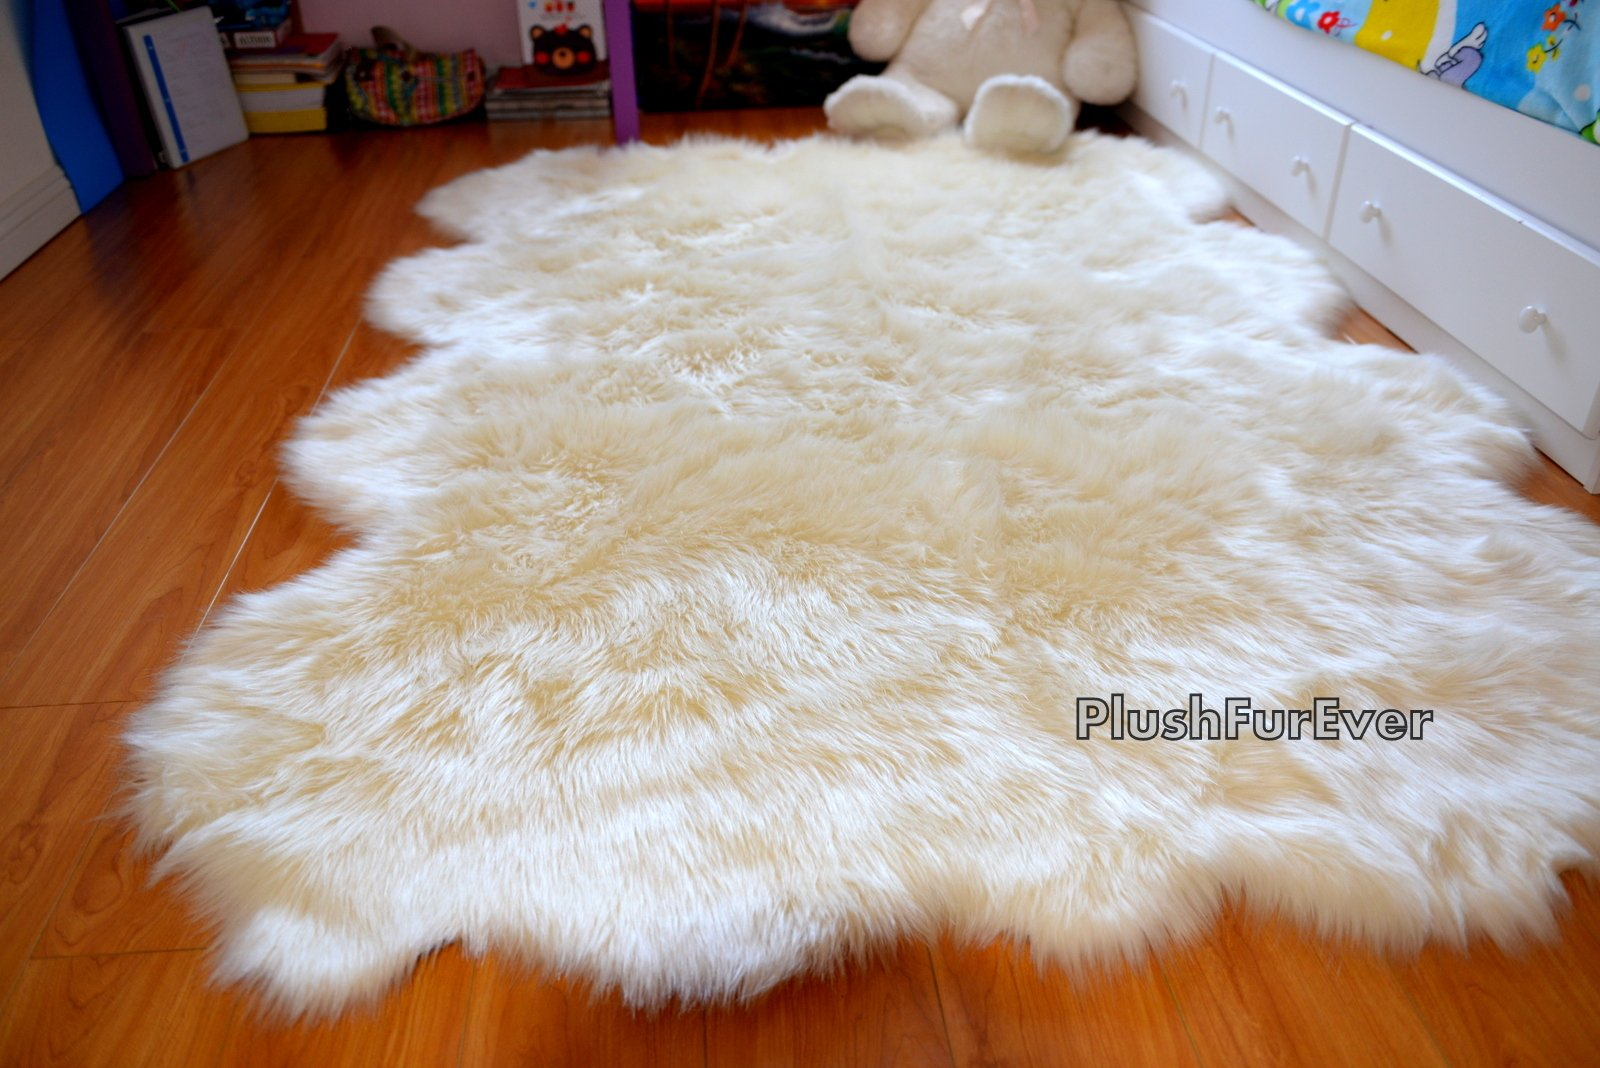 SC Love Collections Plush Sheepskin Octo Eight Pelts Warm White Shaggy Luxurious Home Accents Decor (5' x 7' feet) by Fur Accents (Image #3)